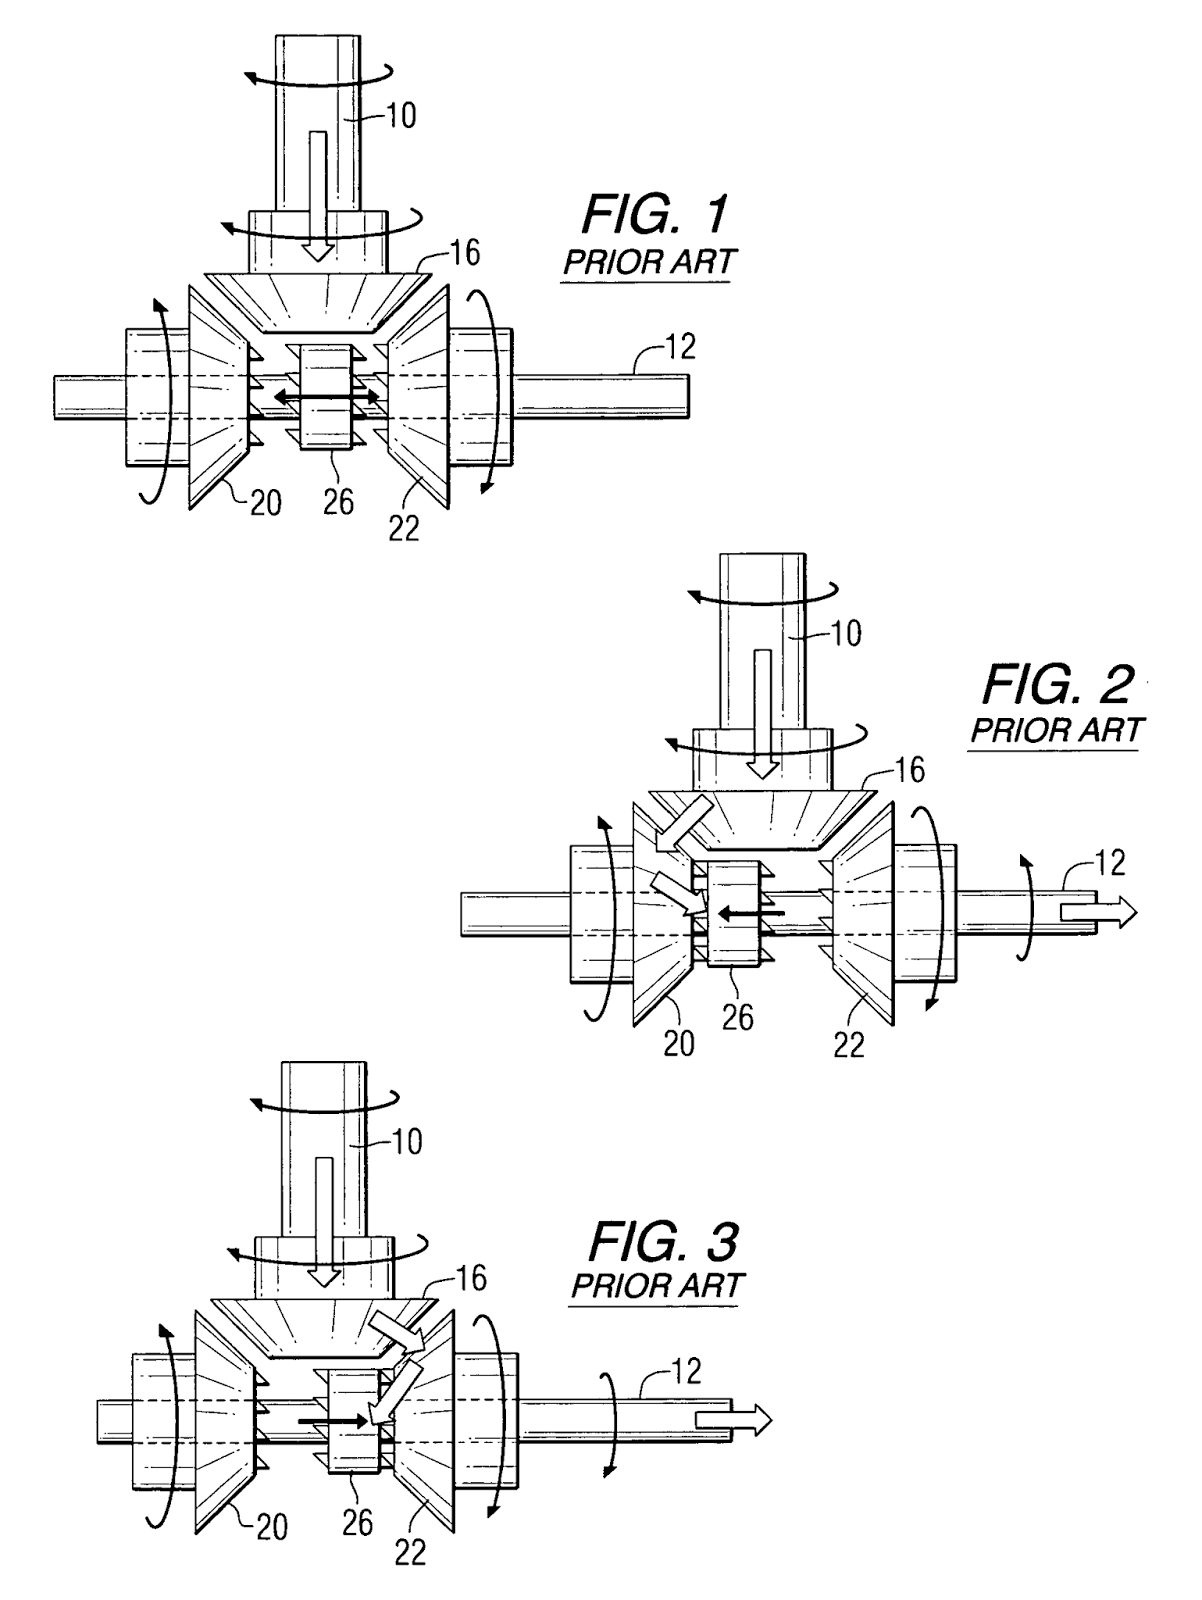 hight resolution of 9 1983 discloses a system marine drivetrain a drive assembly reversal double cone clutch for a boat comprising a horizontal input shaft